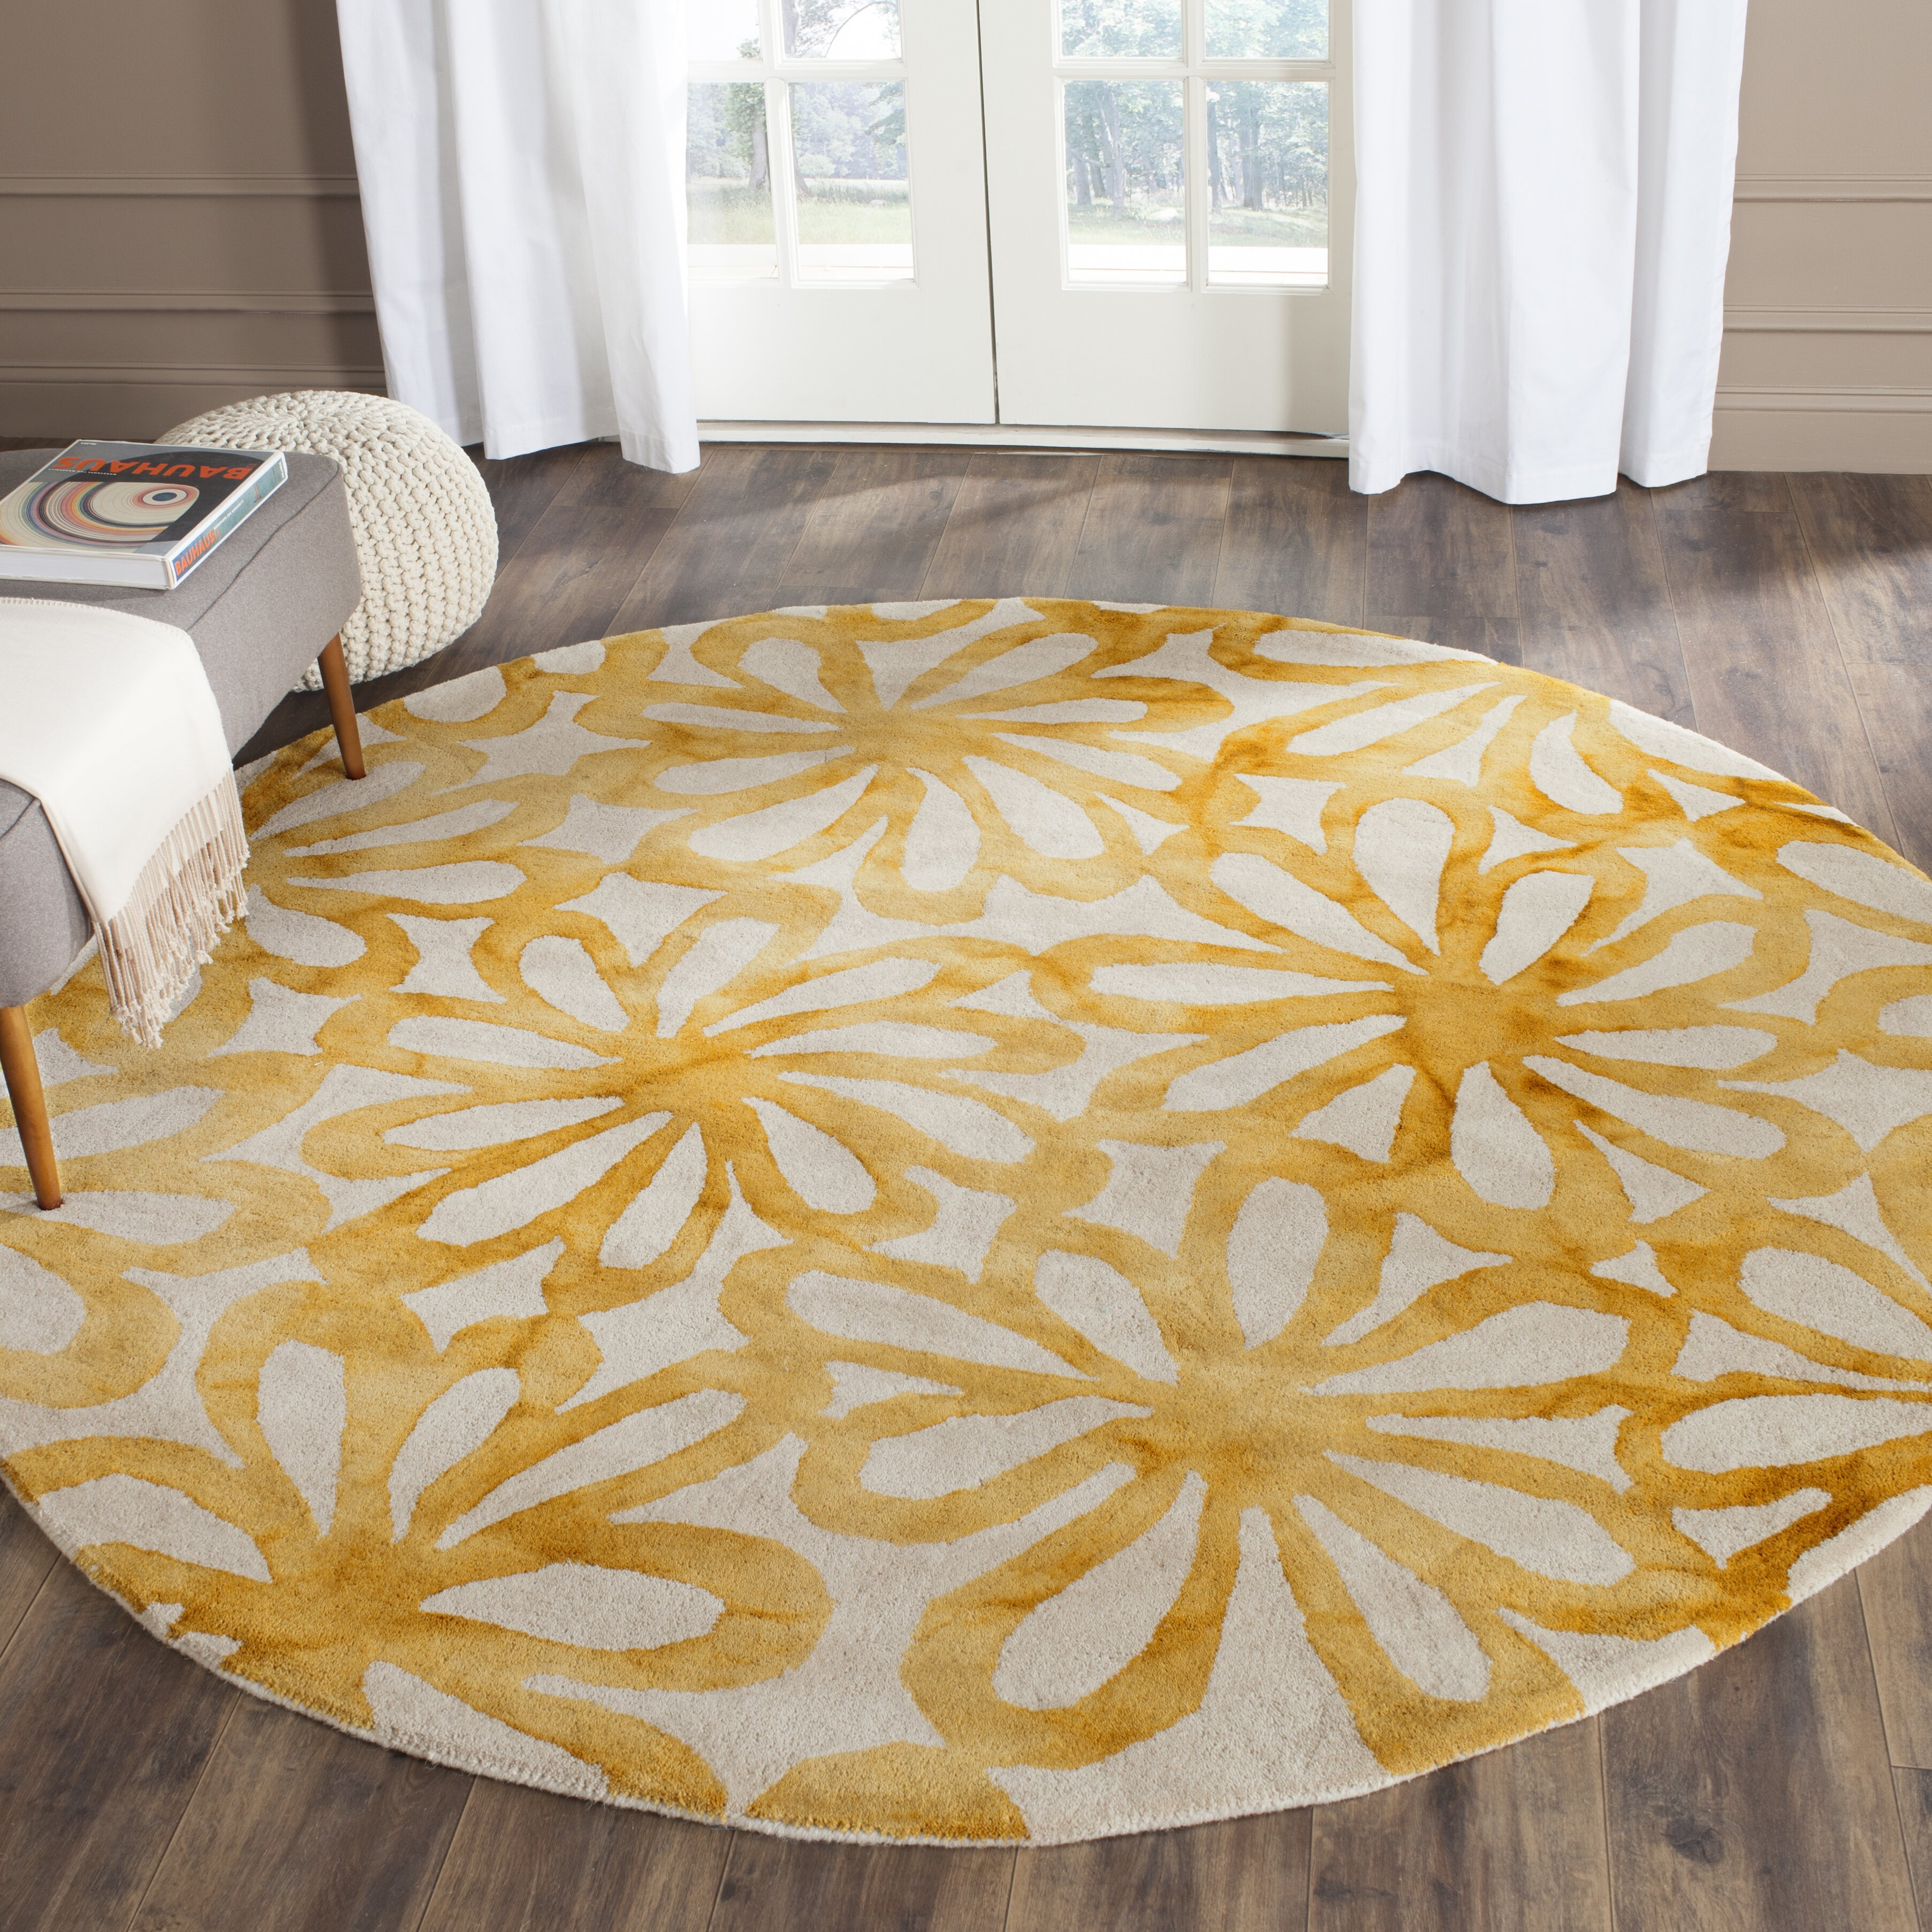 Dog Eating Wool Rug: Bungalow Rose Hand-Tufted Beige & Gold Area Rug & Reviews